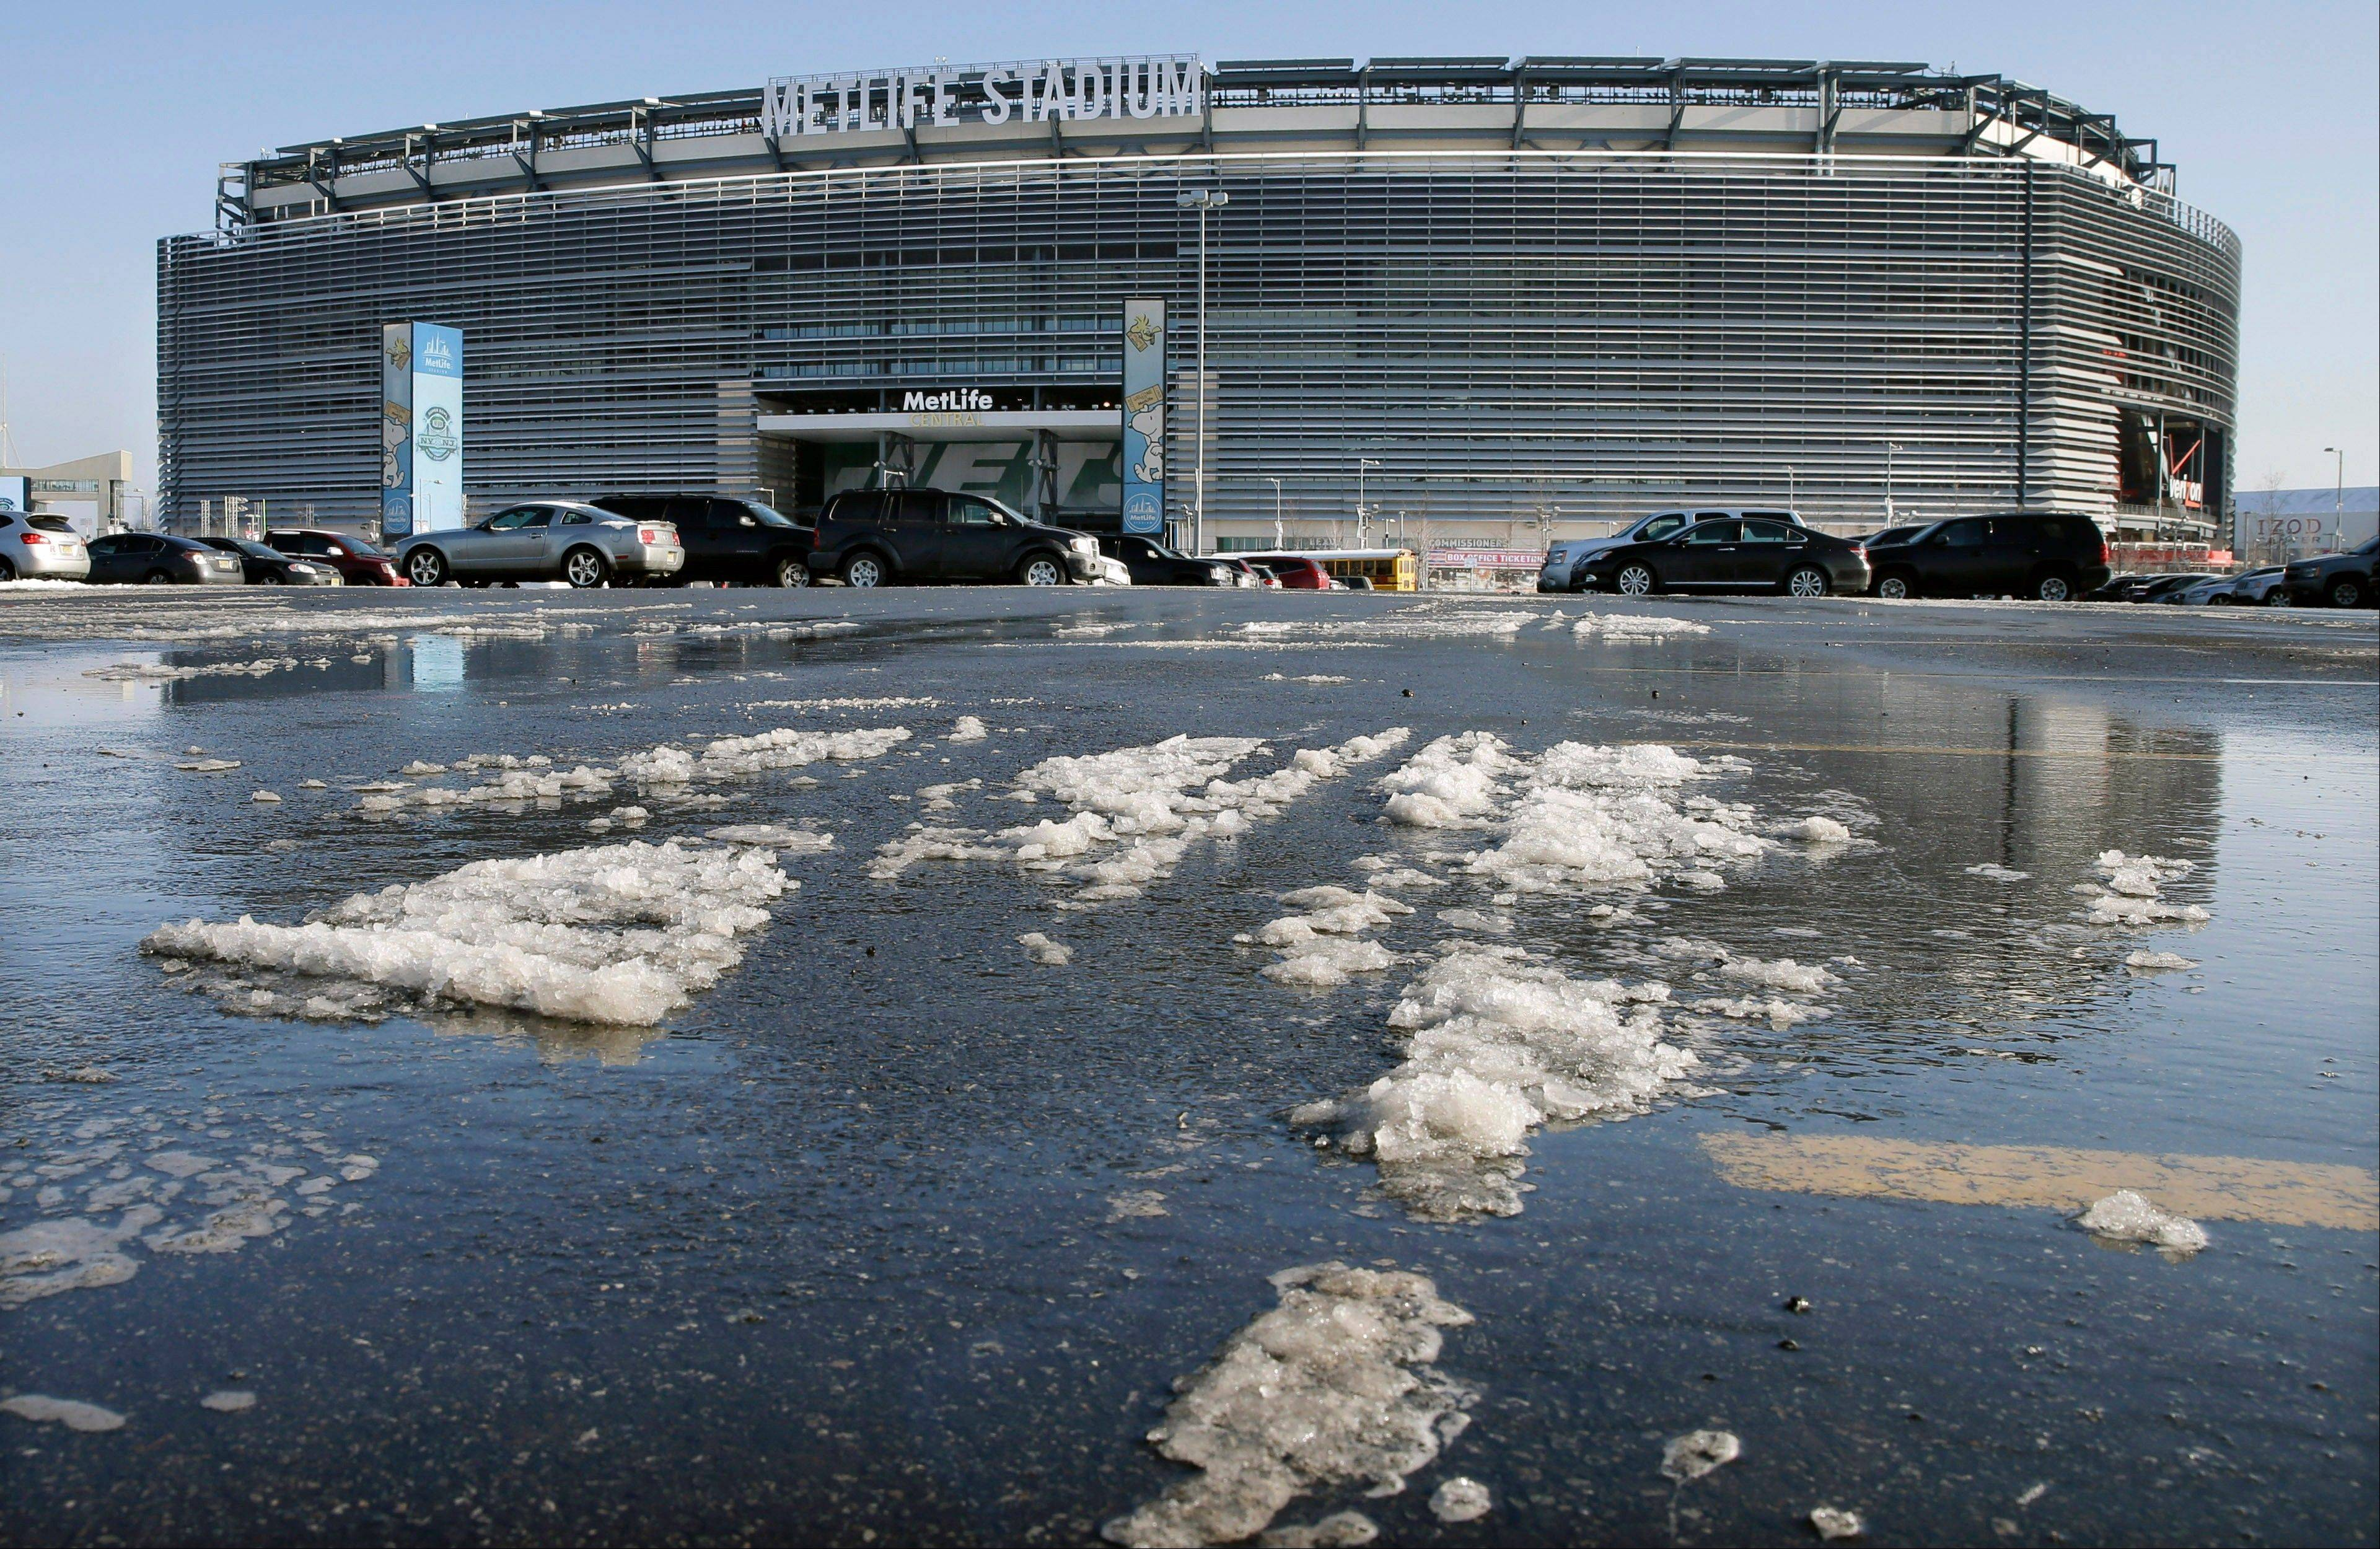 Snow and slush left from Tuesday�s snowfall is seen outside MetLife stadium in East Rutherford, N.J. Later Wednesday, at MetLife, officials demonstrated snow removal and melting machinery and outlined emergency weather scenarios and contingency plans for the Super Bowl in February.